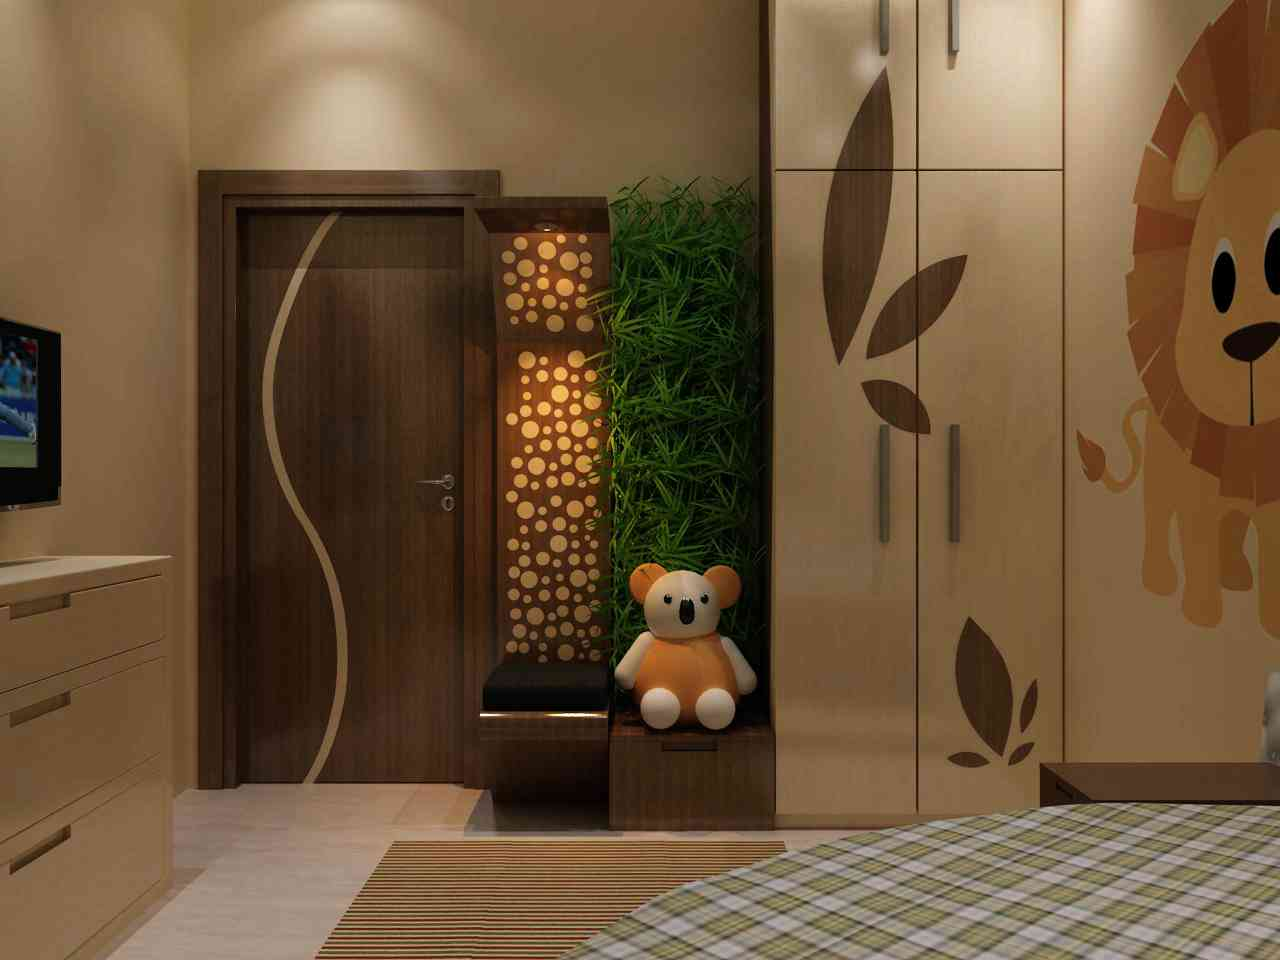 Door designs for bedrooms indian bedroom door design ideas for Entrance door designs for flats in india